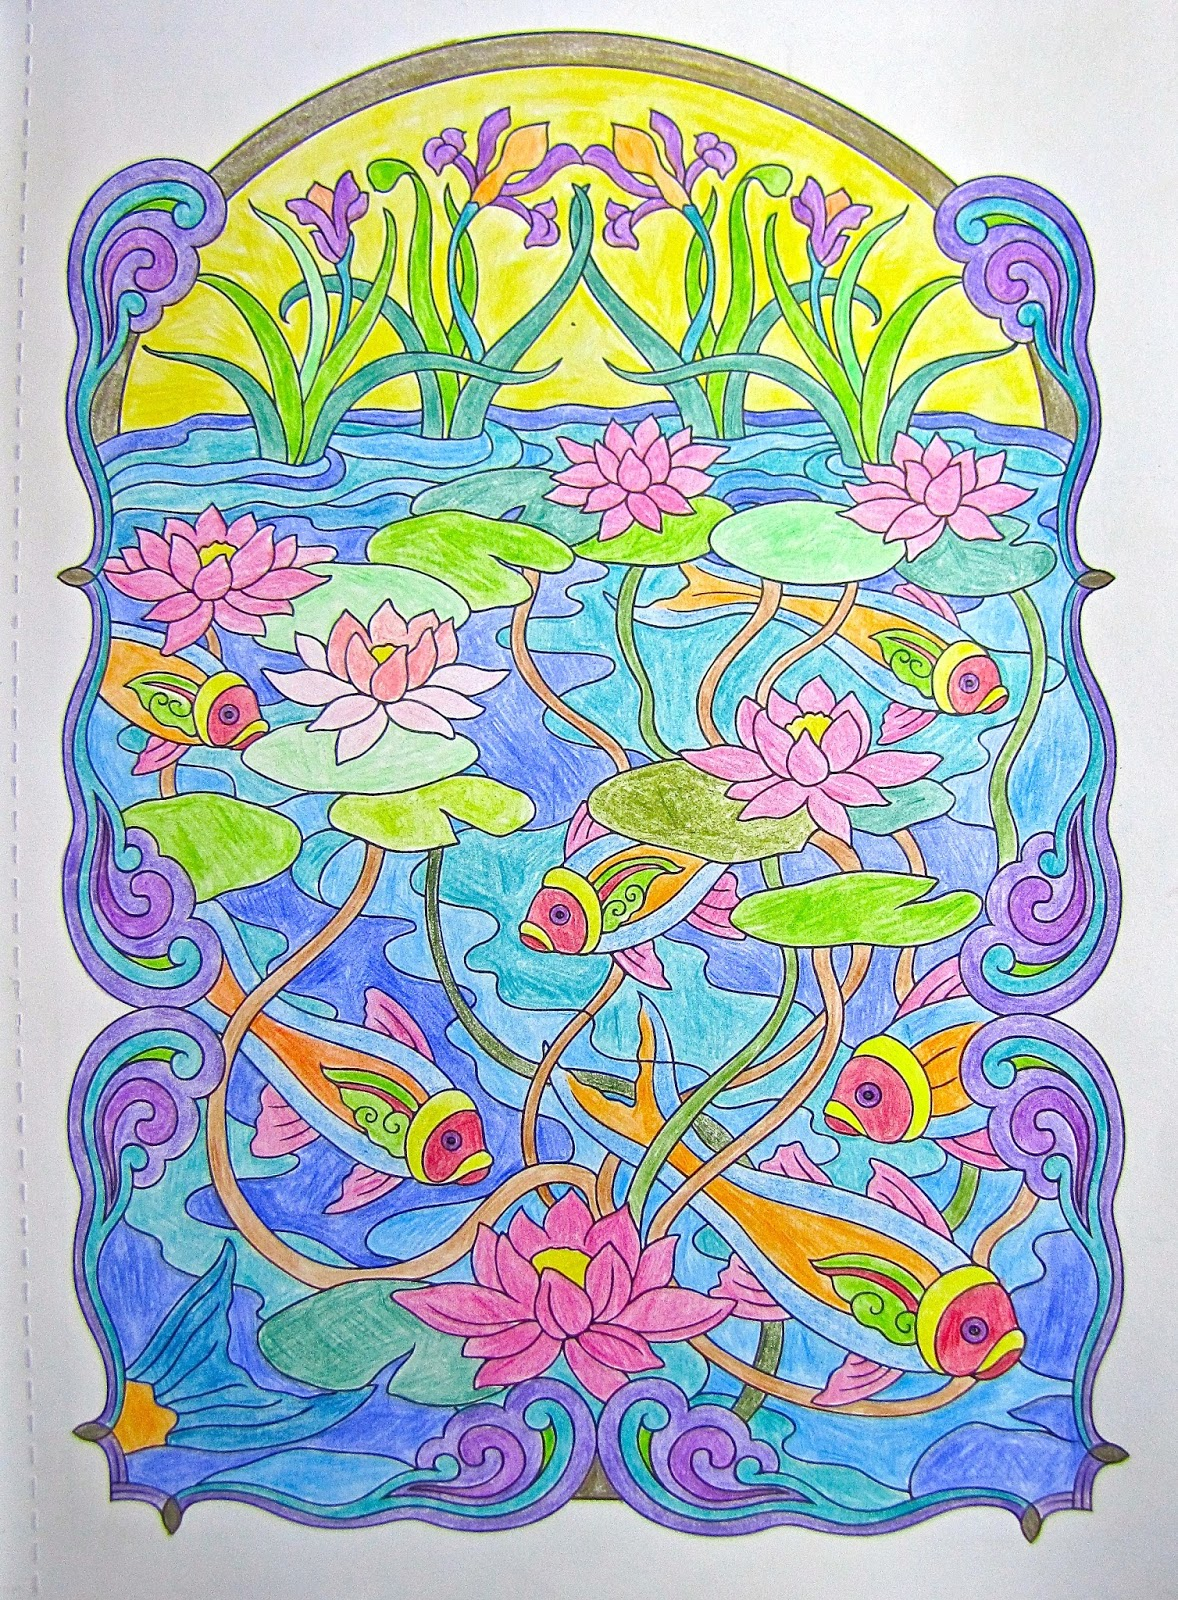 A Page I Colored From Creative Haven Art Nouveau Animal Designs Coloring Book